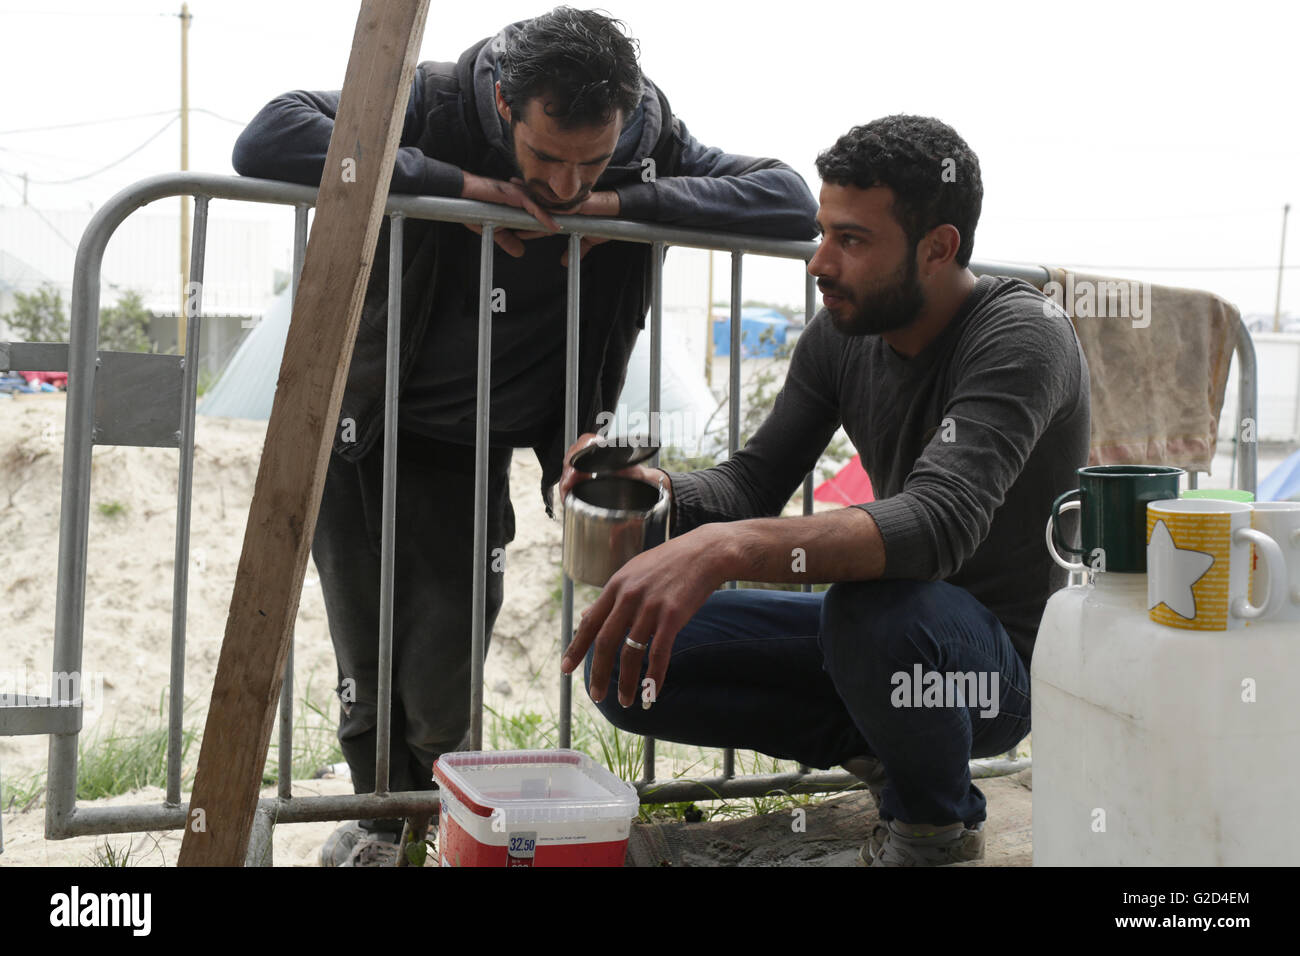 Walid and Ibrahim talk outside their home in the migrant camp dubbed the 'Jungle' on the outskirts of Calais, France, Stock Photo